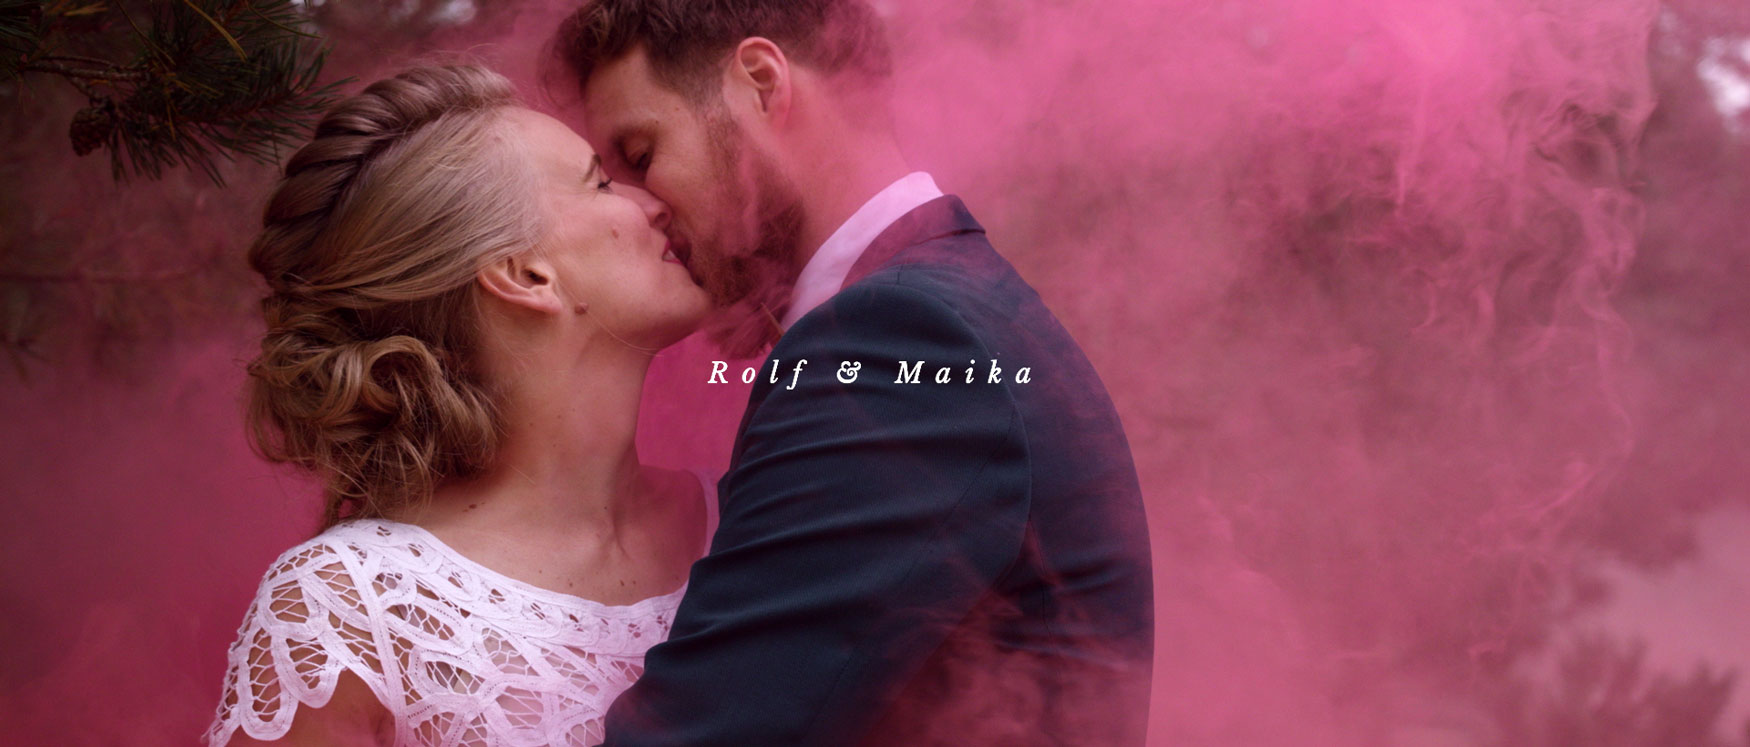 trouwfilm-videograaf-dreamers-amsterdam-trouwvideo-wedding-film-video-videographer-rolf-maika-web-1750